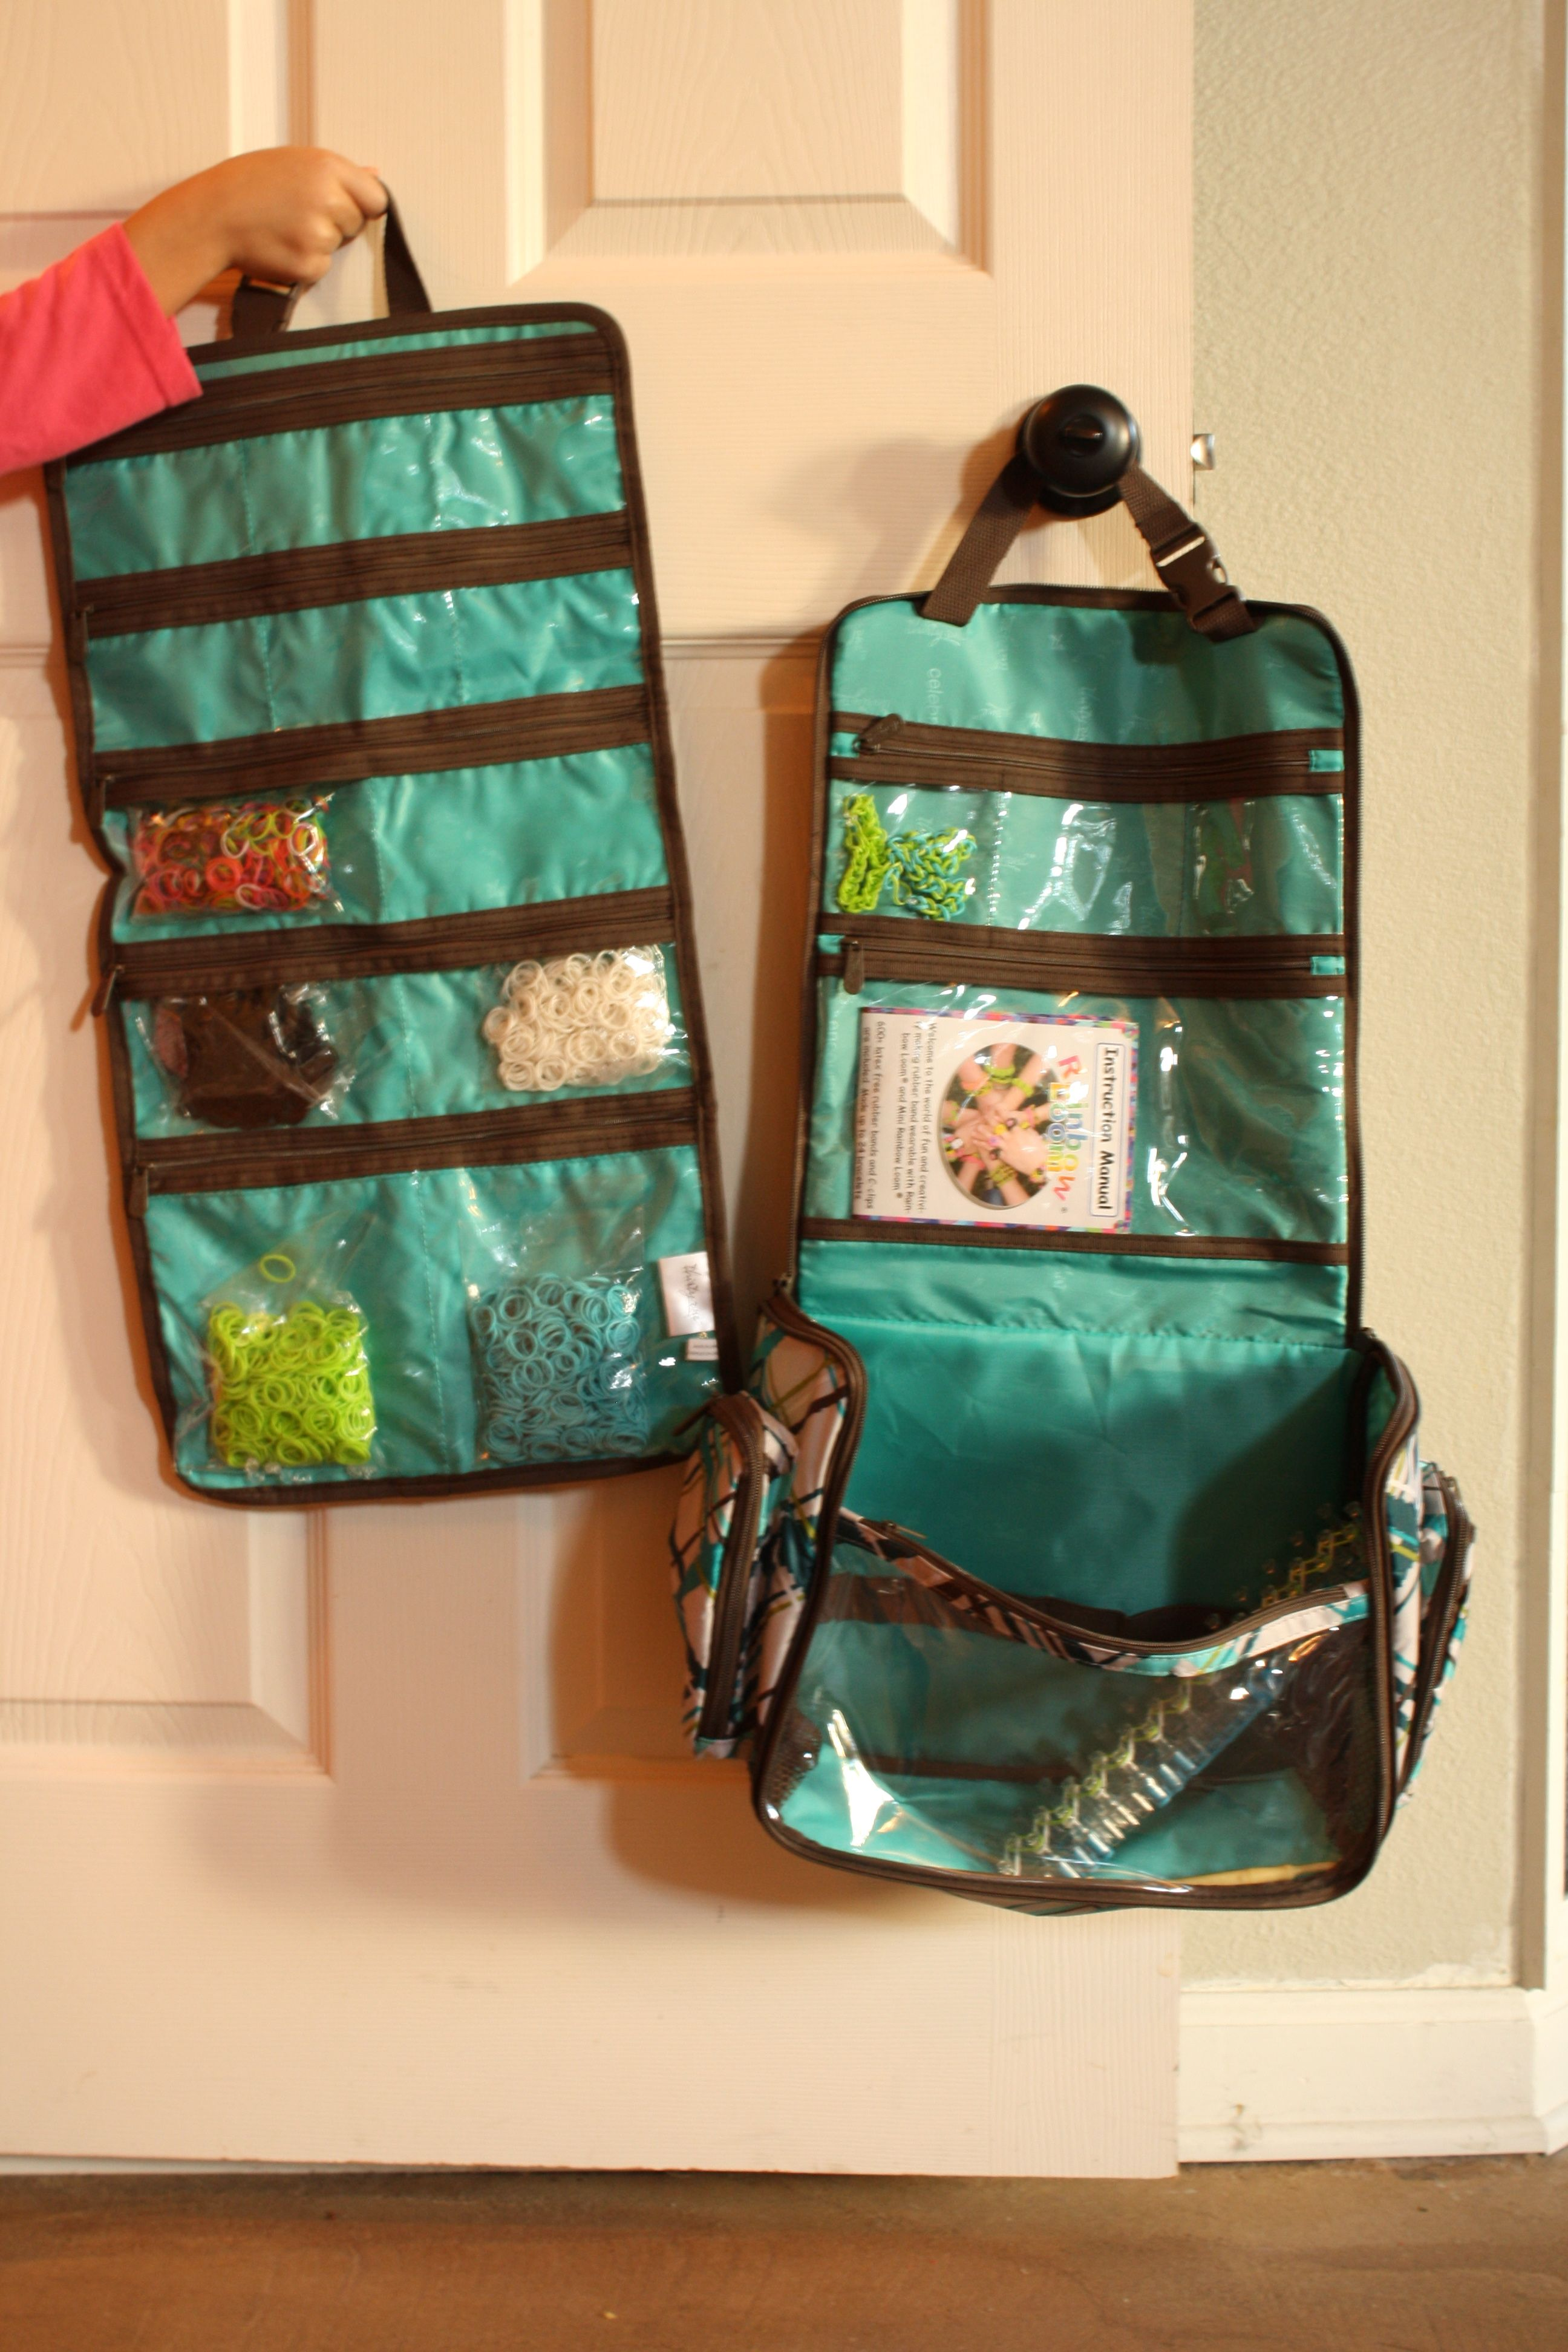 The Thirtyone Deluxe Beauty Bag & Uptown Jewelry Bag make